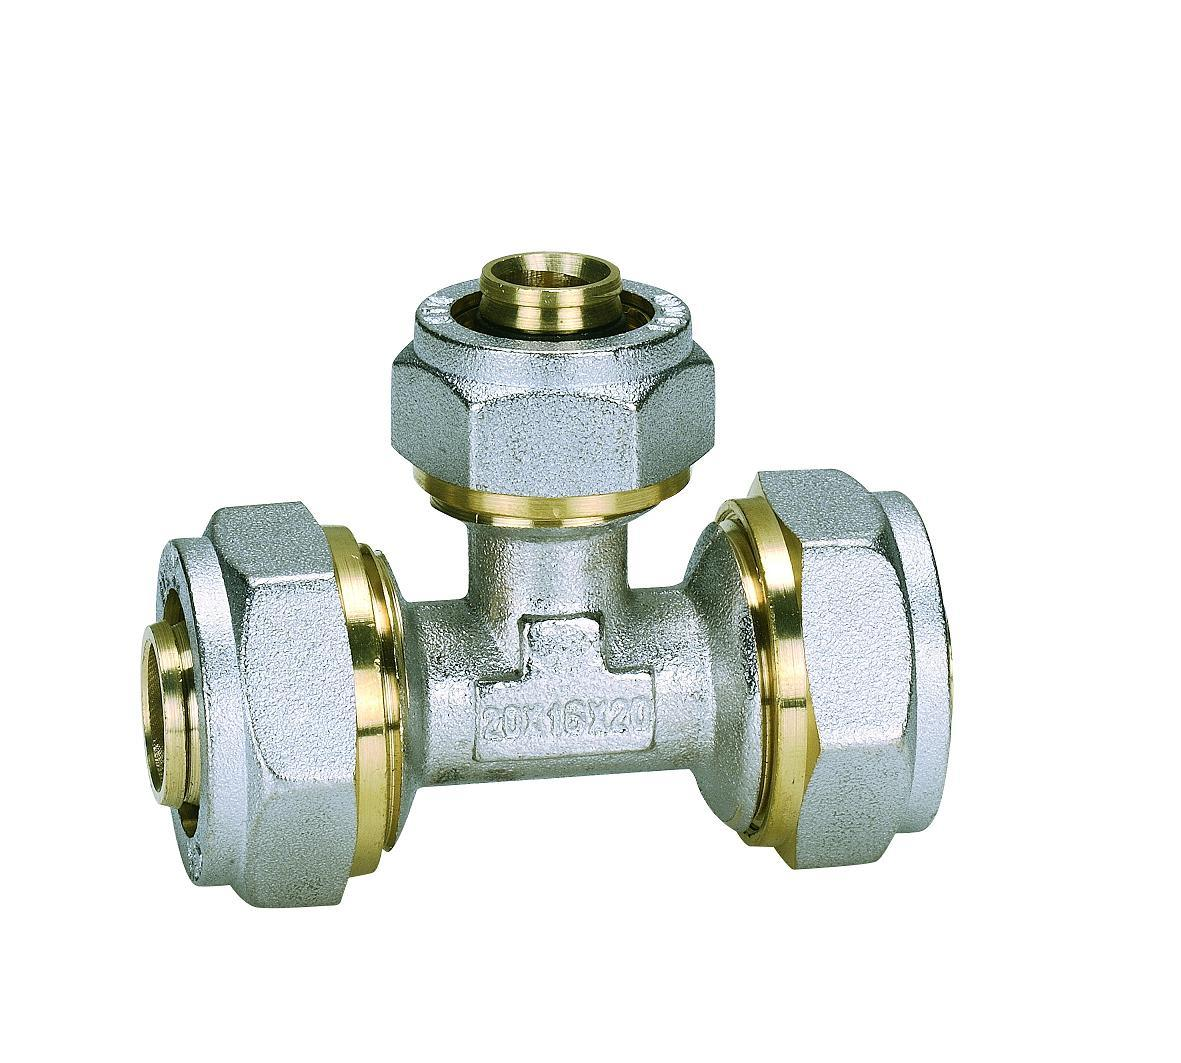 Brass Fittings for Equal Tee